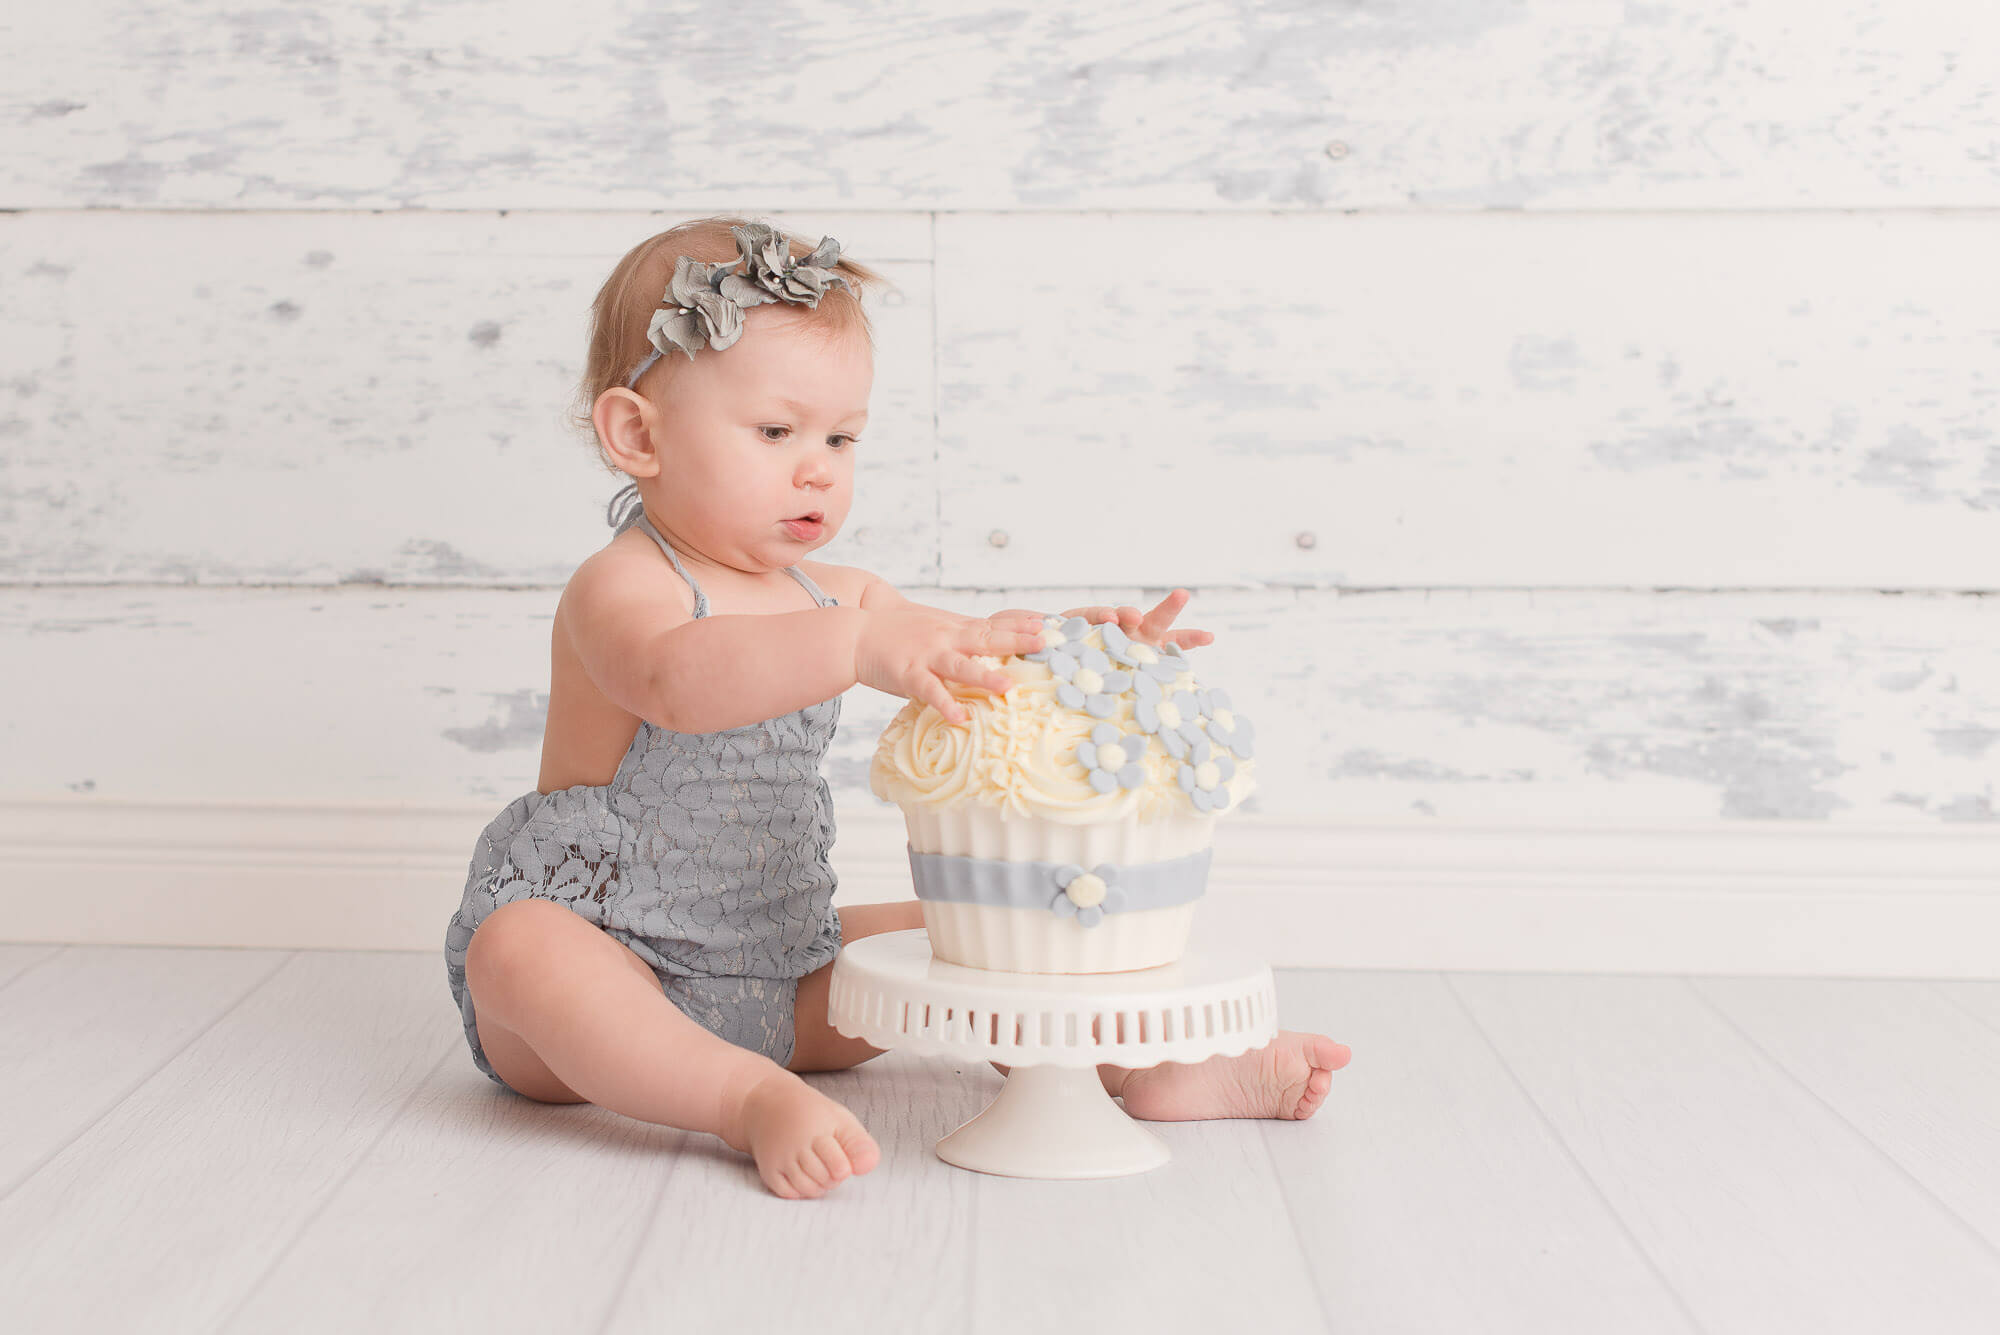 vancouver cake smash photographer captures girl touching flower cake